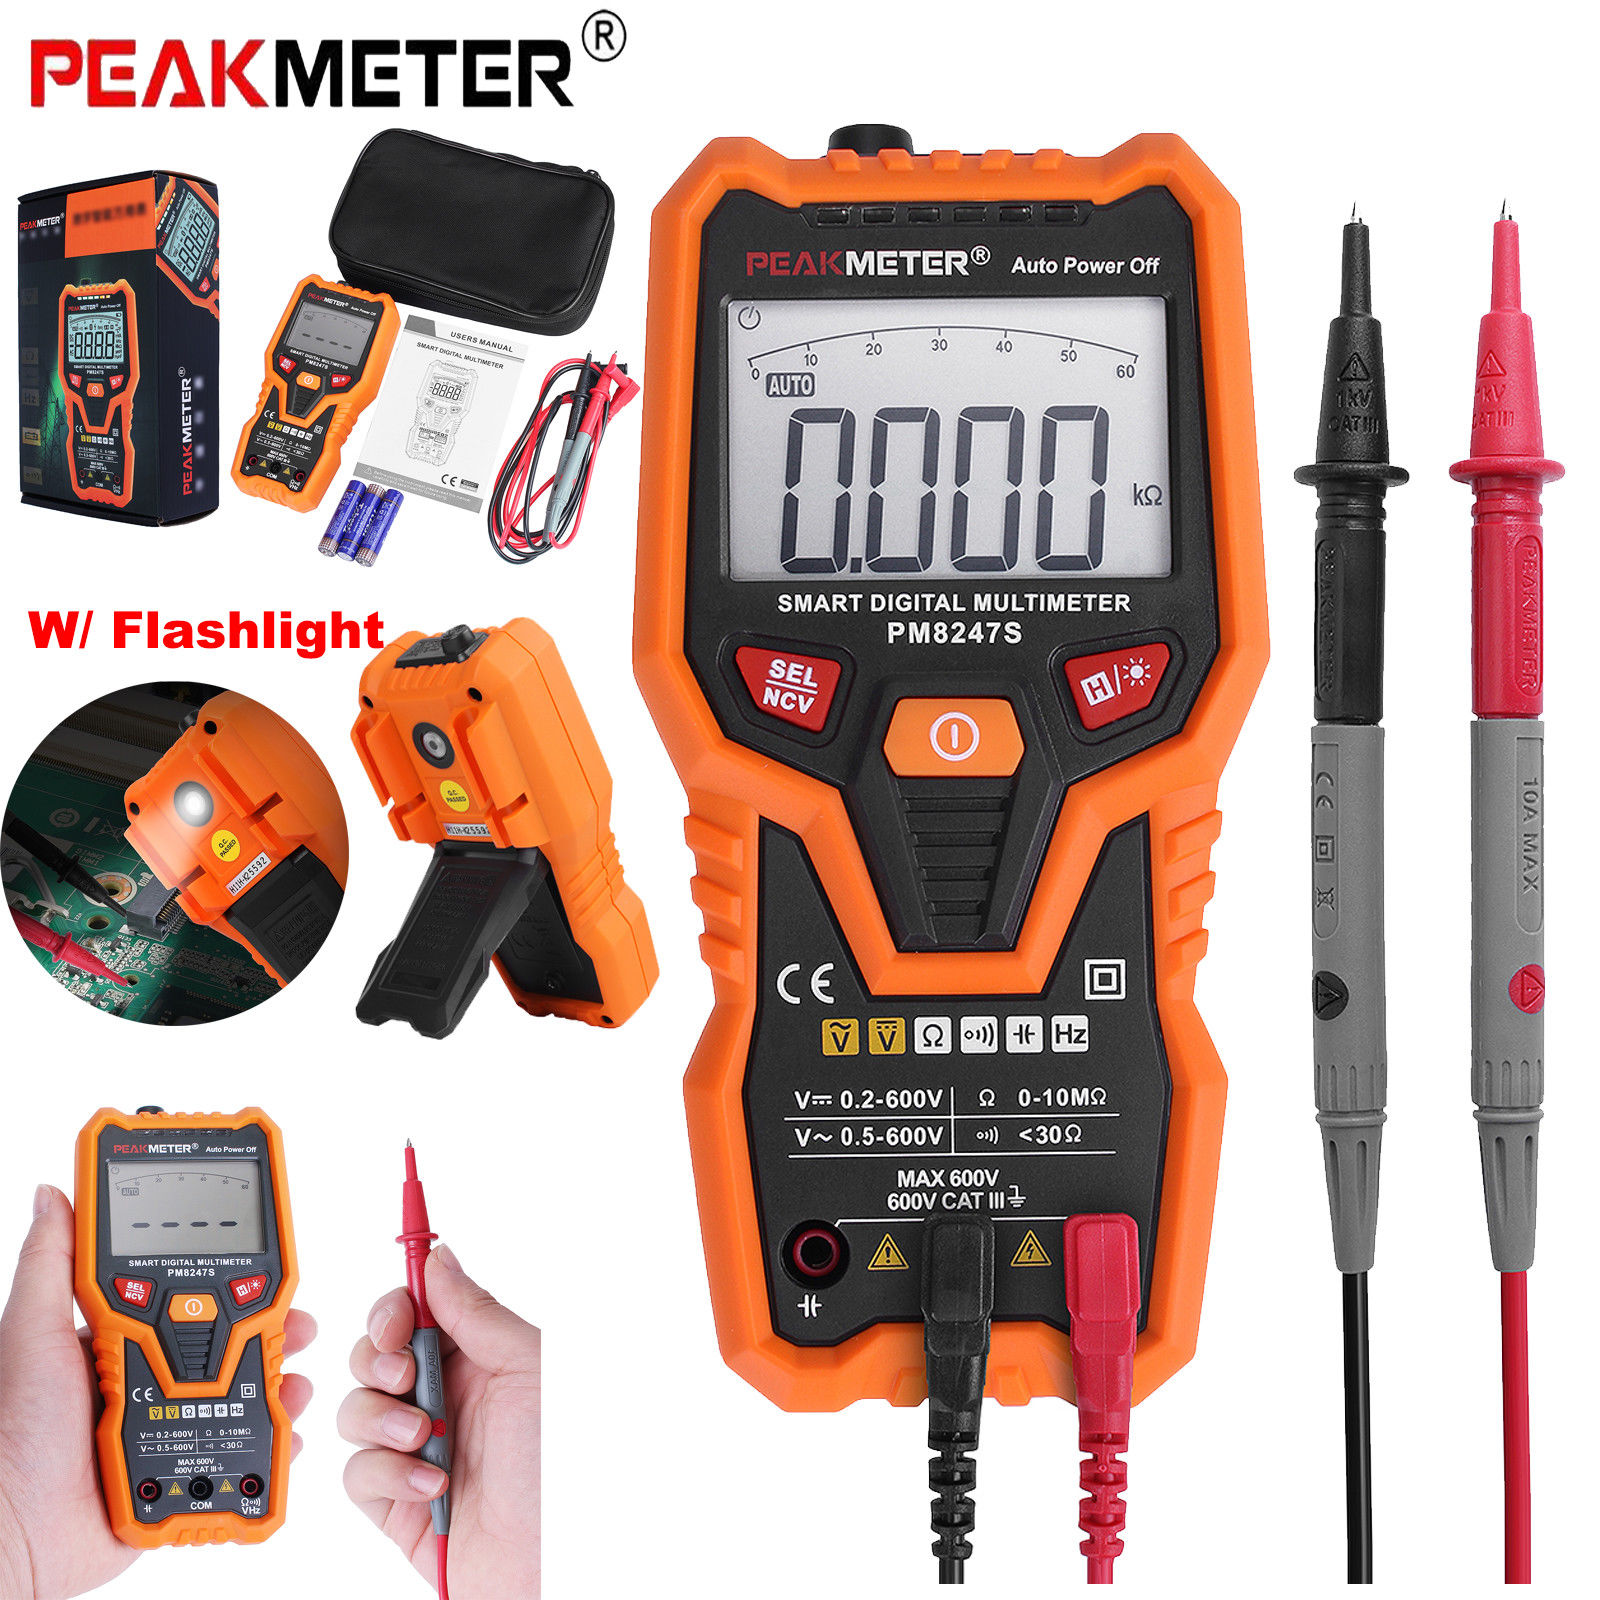 PEAKMETER PM8247S Non-contact Auto-Ranging Smart Digital Multimeter AC, DC, Volt, Current, Resistance and Capacitance Auto Power Off With Backlight Flashlight - Orange/Grey